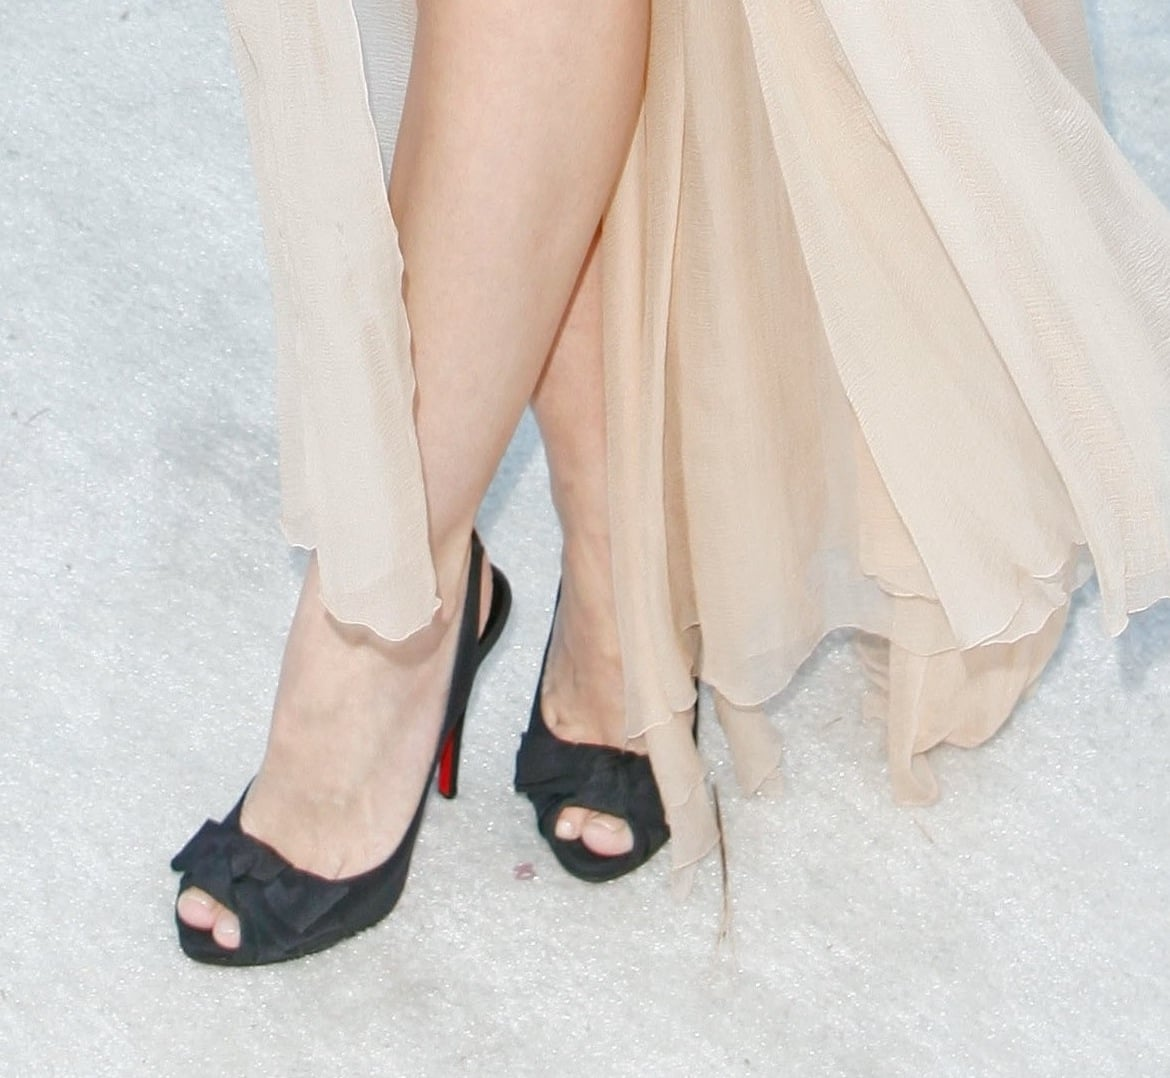 Outside Elton John's soiree, Jaime King showed off her Christian Louboutin slingback peep-toes embellished with adorable bows.